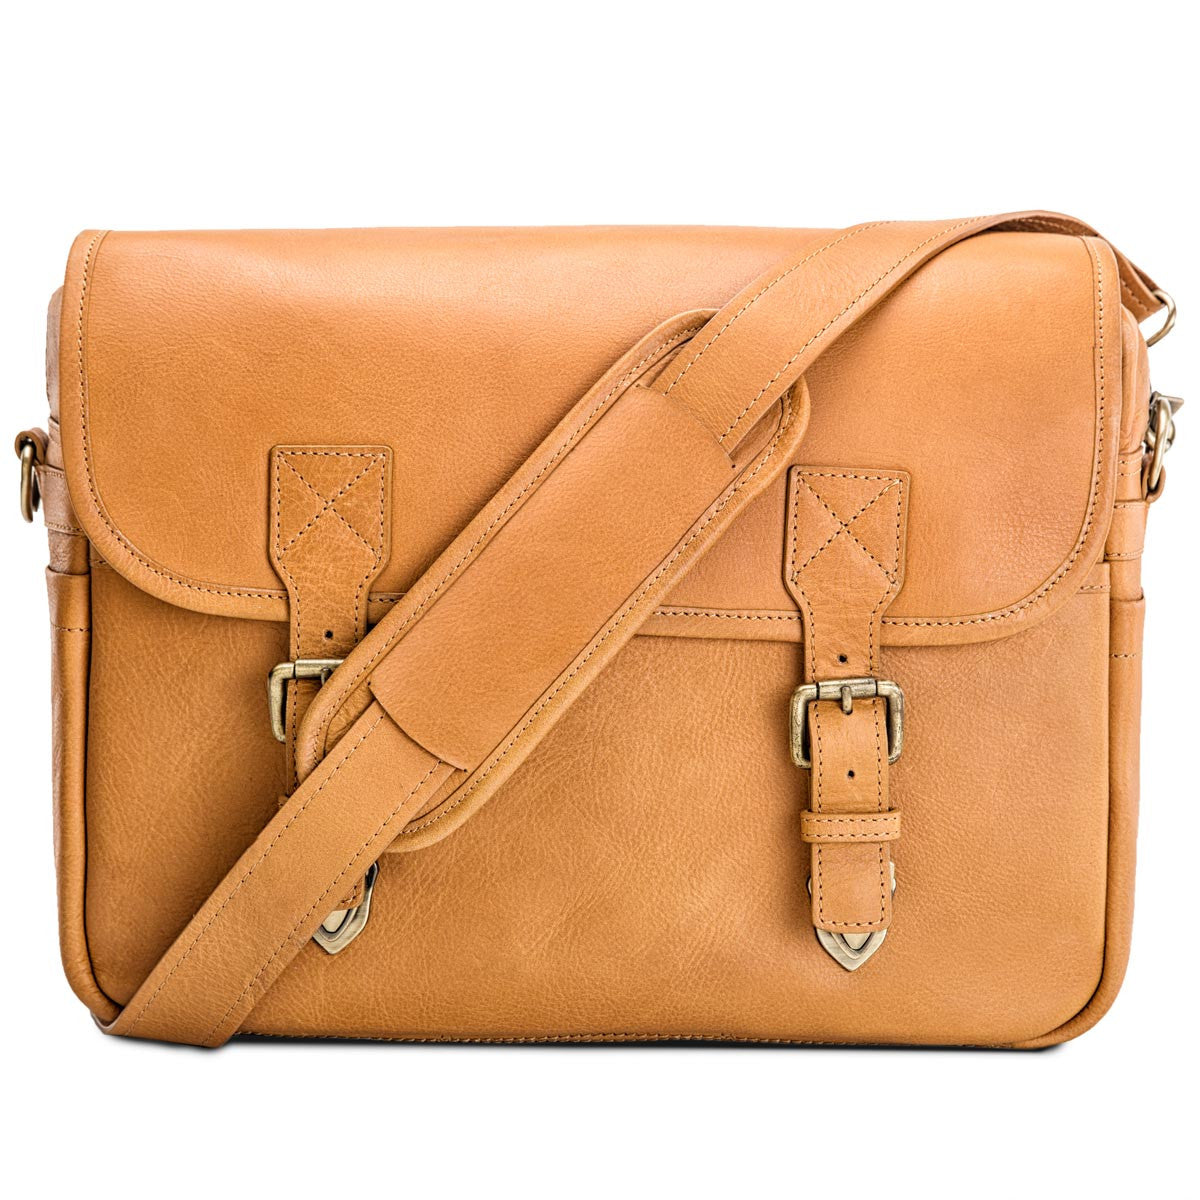 Rimo I in tan leather, stylish dslr camera messenger bag by Blackforest bags  ...